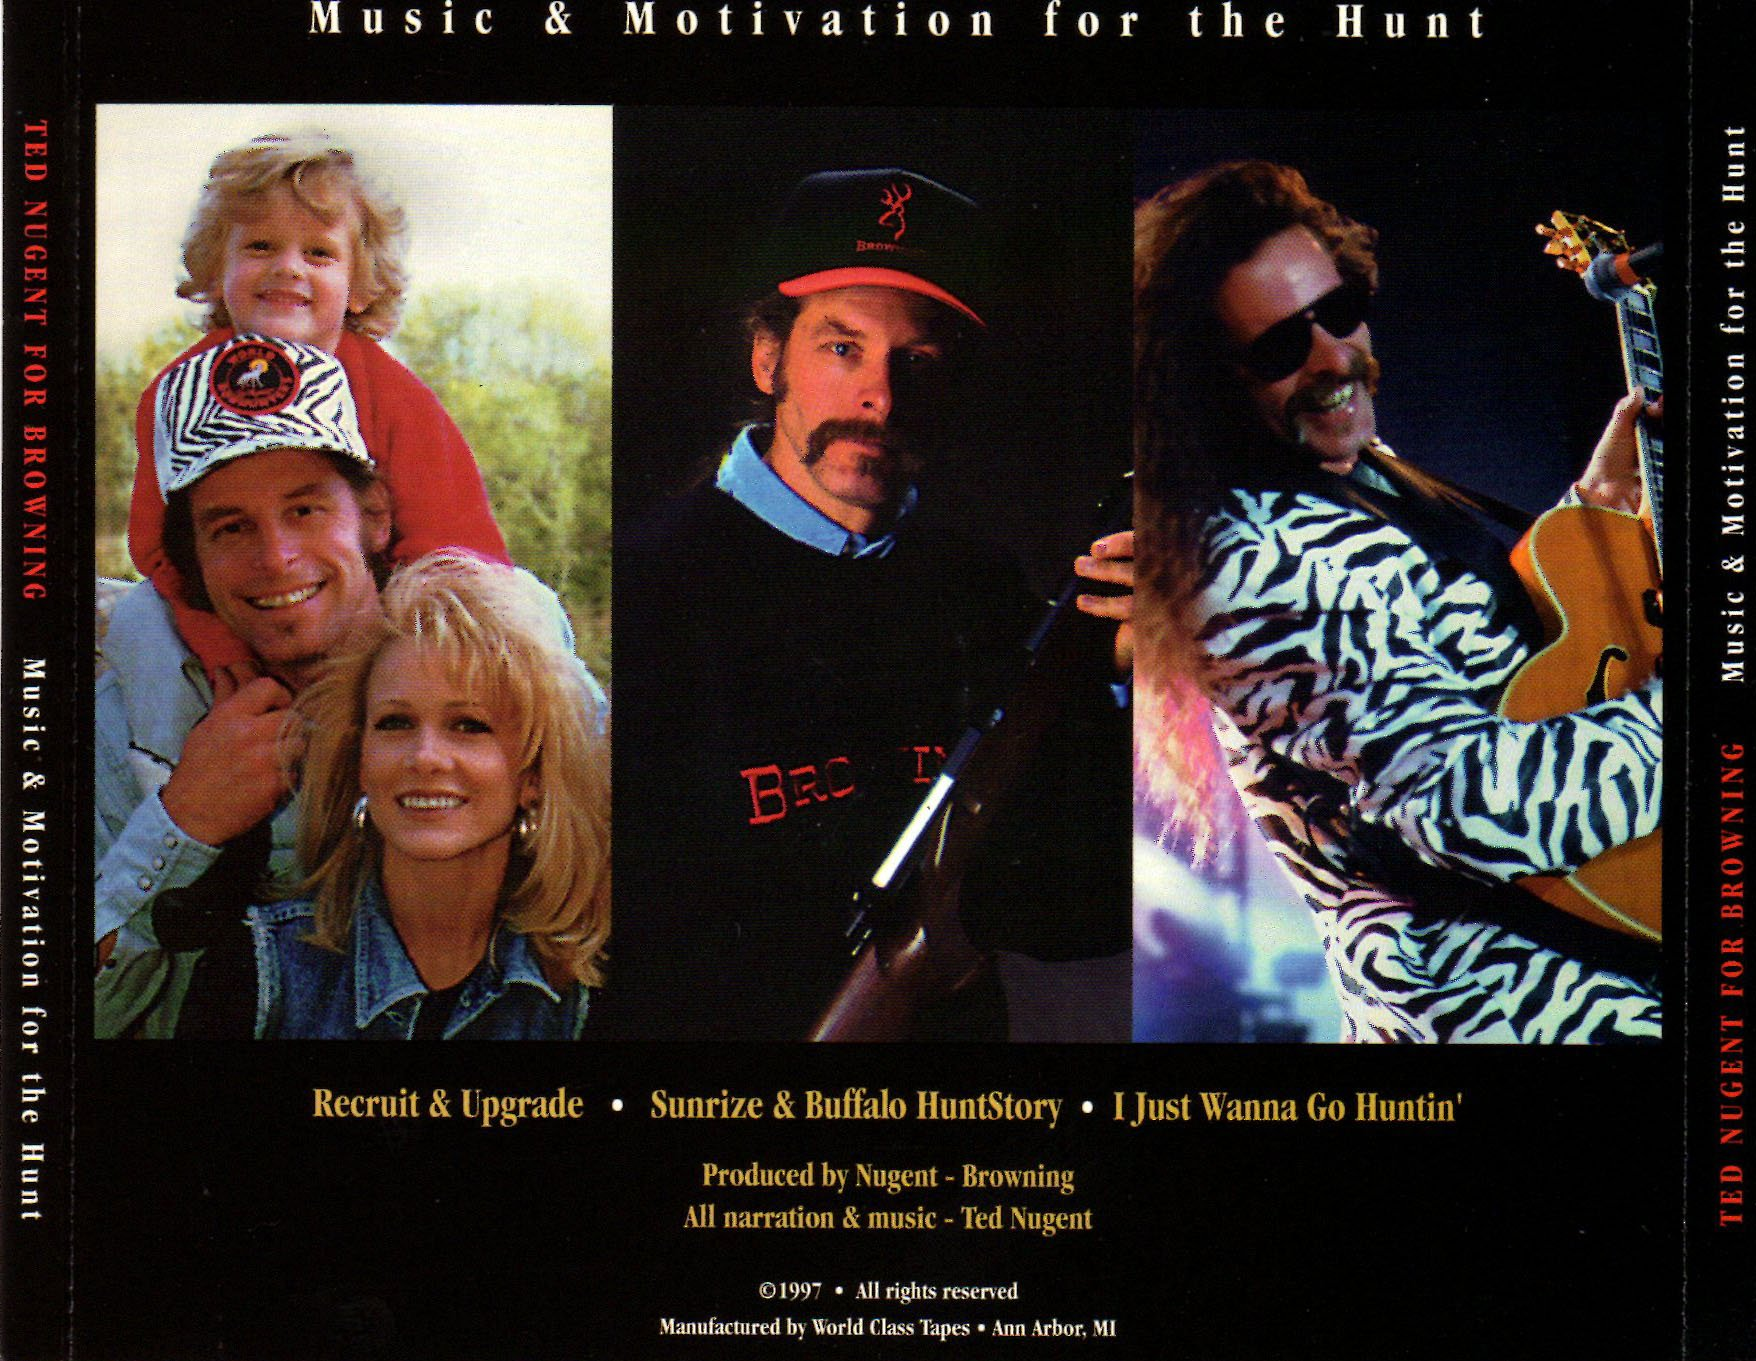 Image result for ted nugent browning music for the hunt